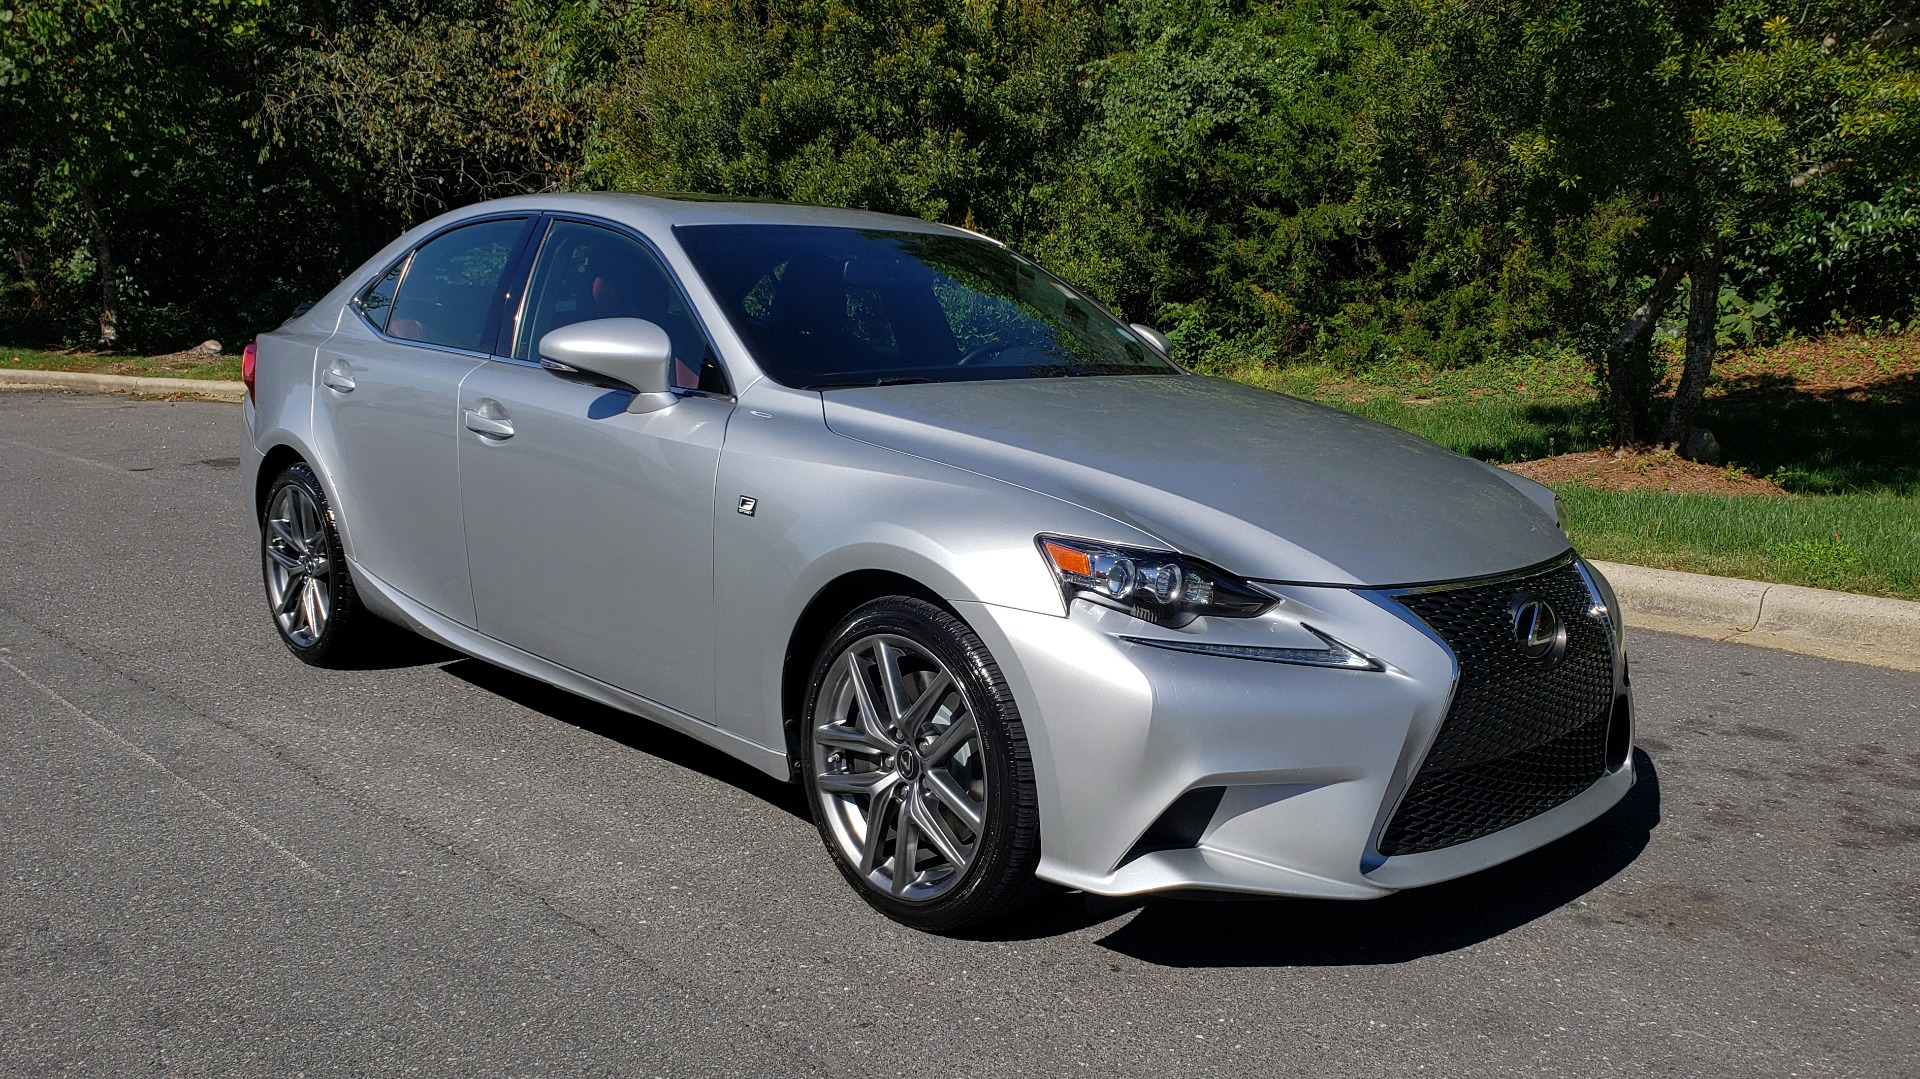 Used 2015 Lexus IS 350 F-SPORT / AWD / NAV / SUNROOF / BSM / REARVIEW for sale Sold at Formula Imports in Charlotte NC 28227 4